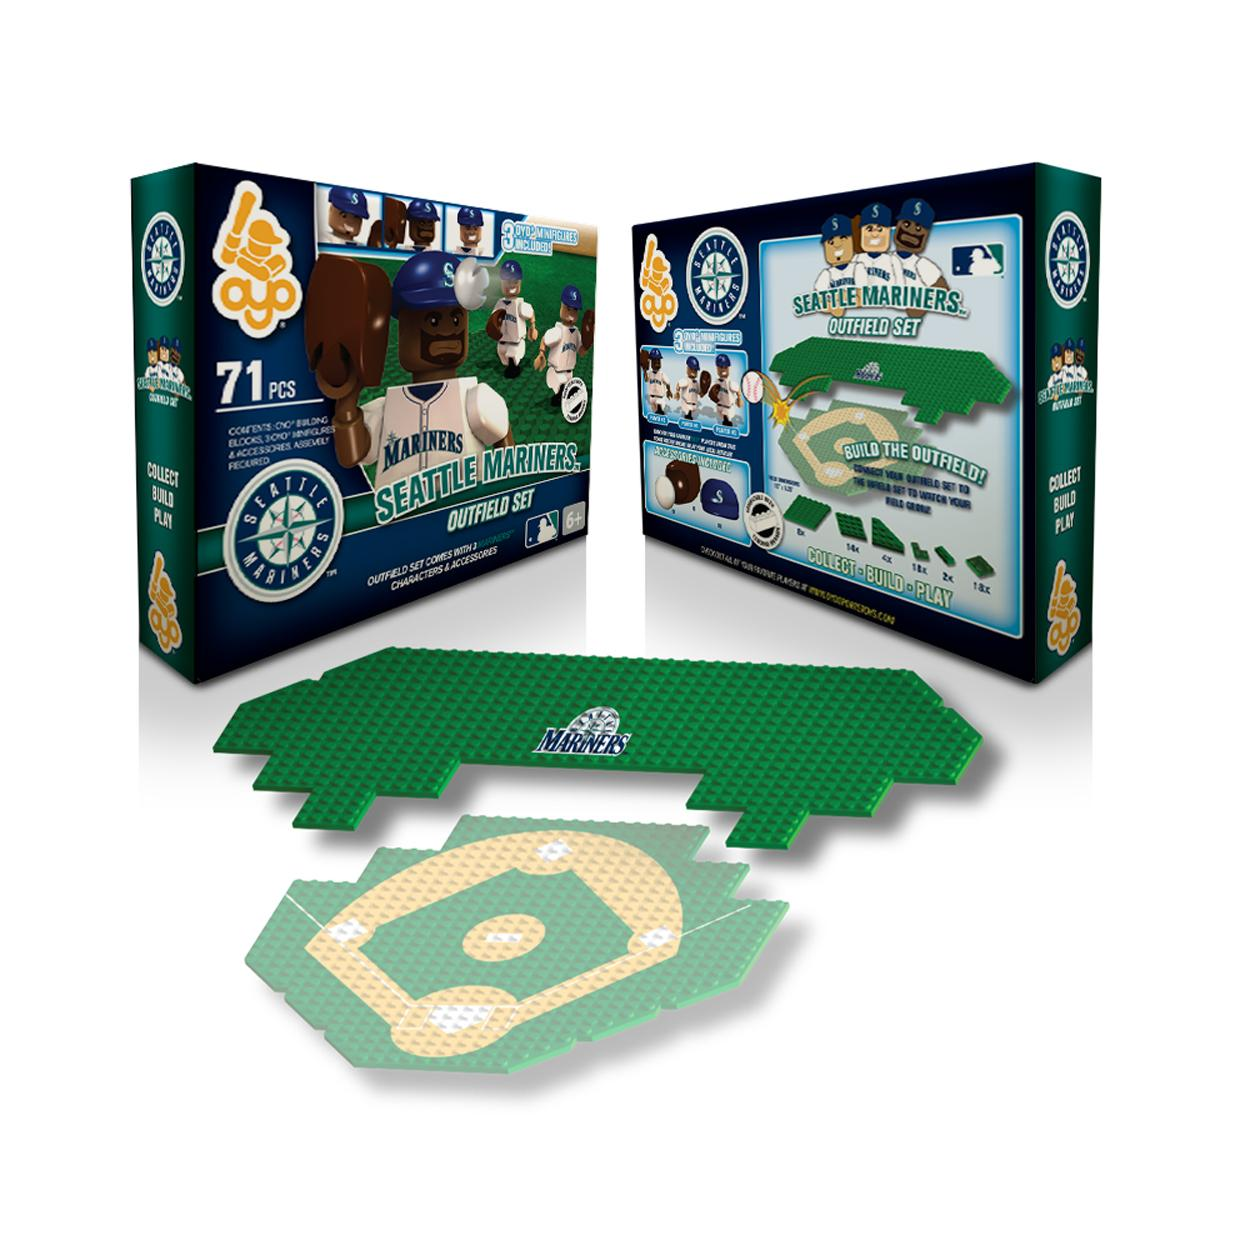 OYO MLB Outfield Set - Seattle Mariners Seattle Mariners OYOBBSEAFOS